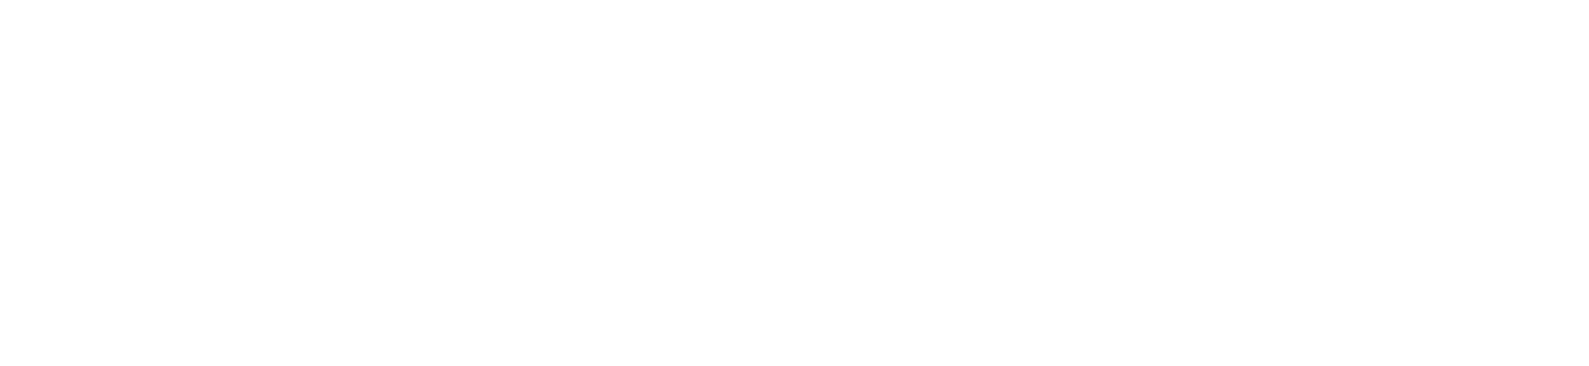 Discover Martin County Like a Local.